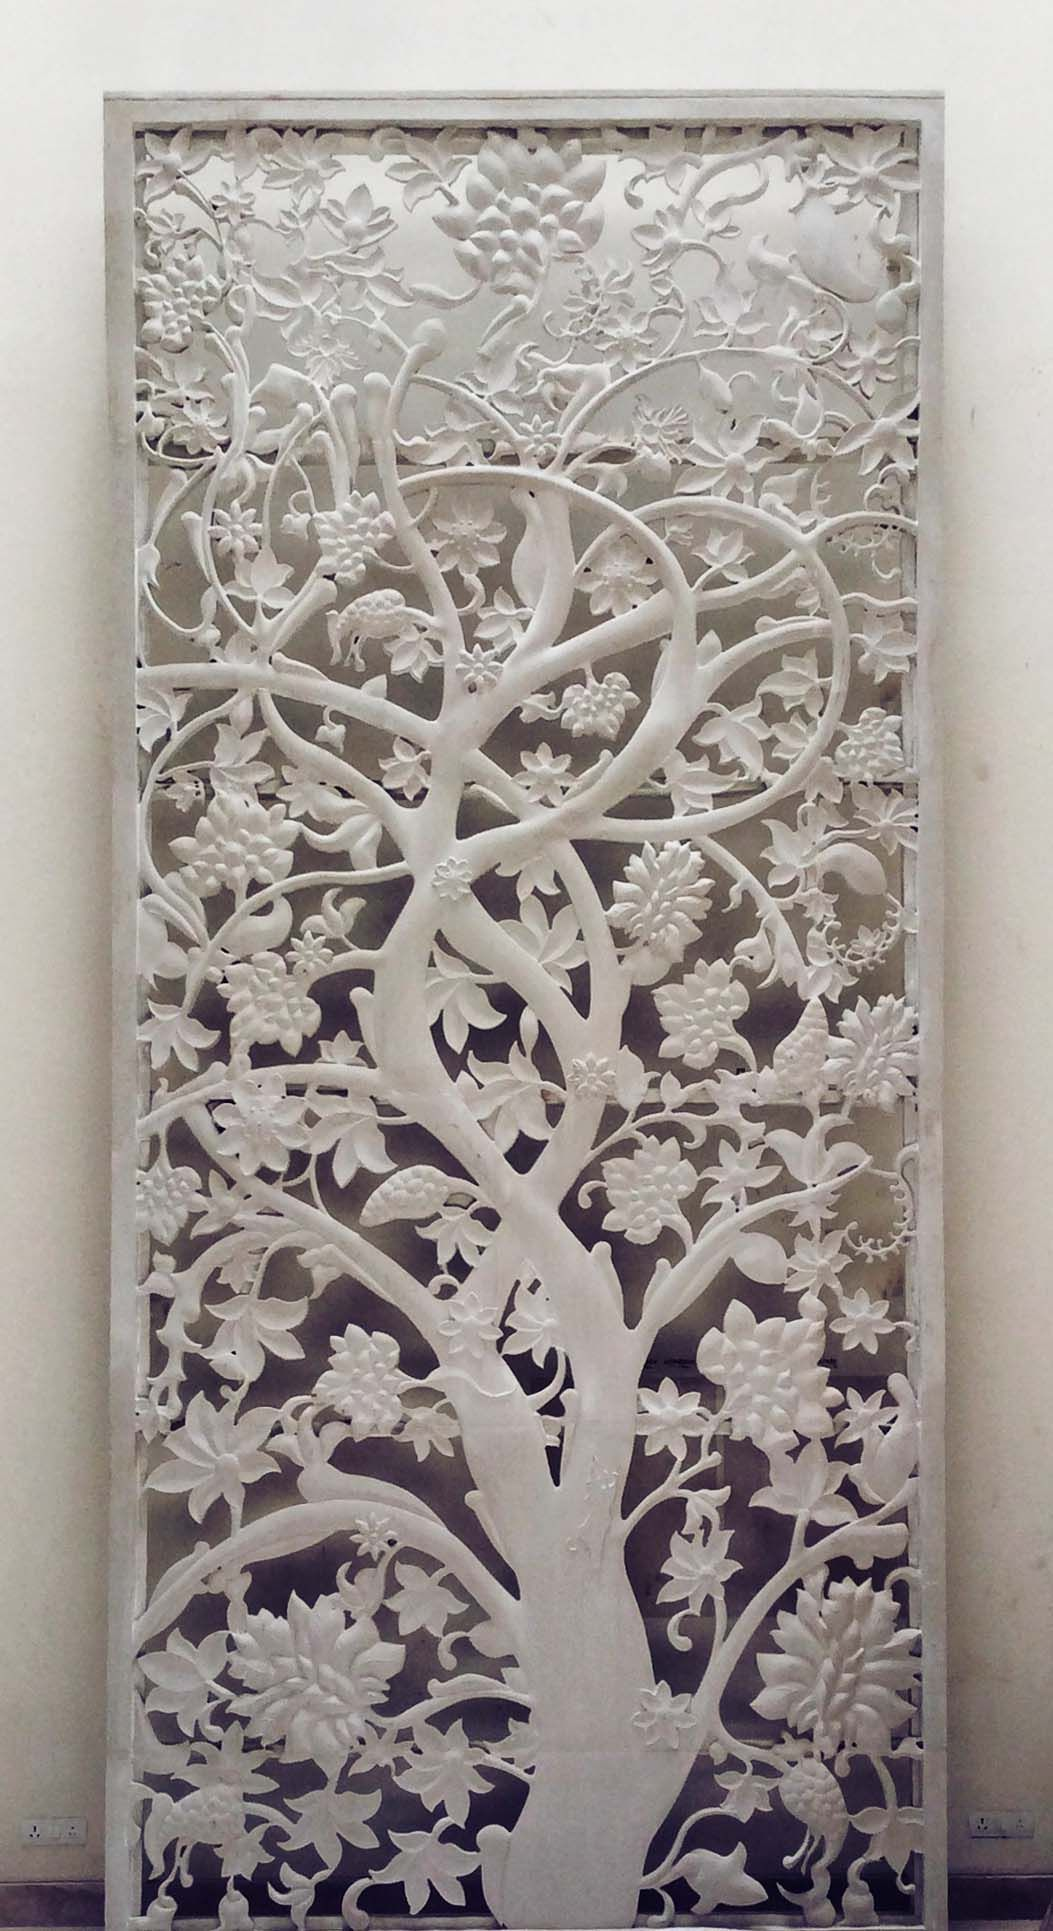 The Tree of Life conceptualized by Odyssey Stone